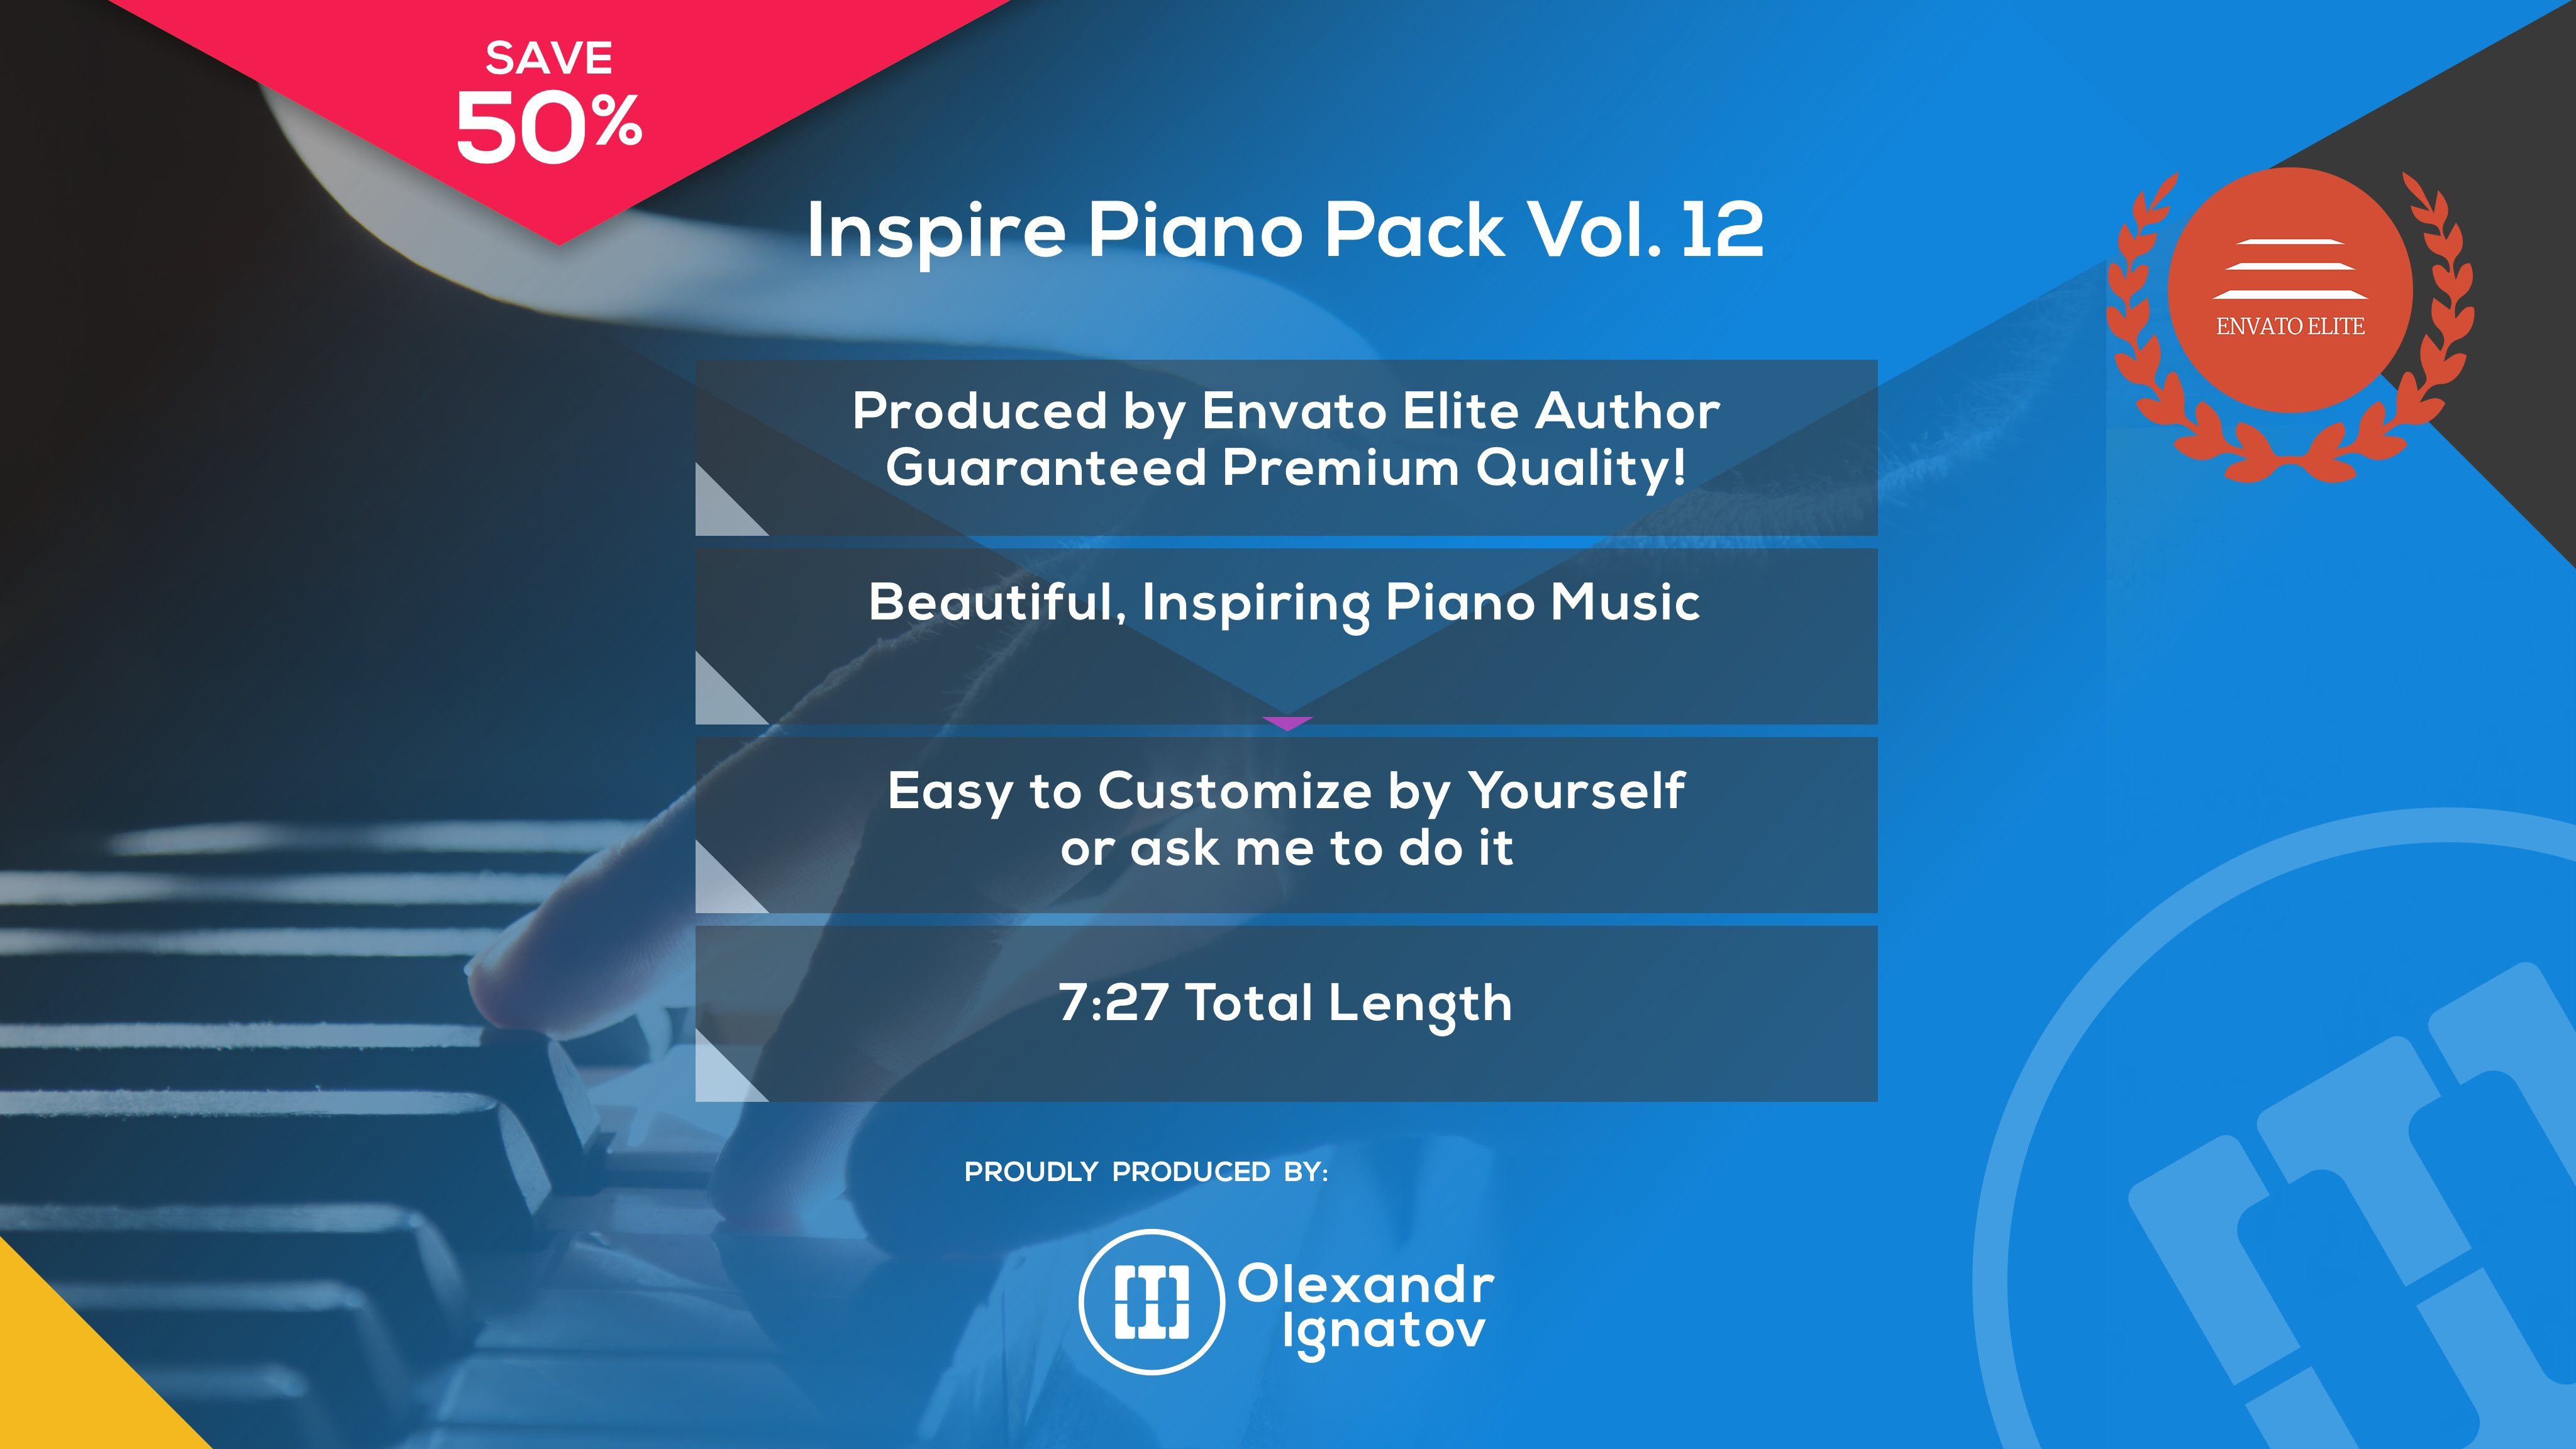 Inspire Piano Pack Vol. 12 - 9